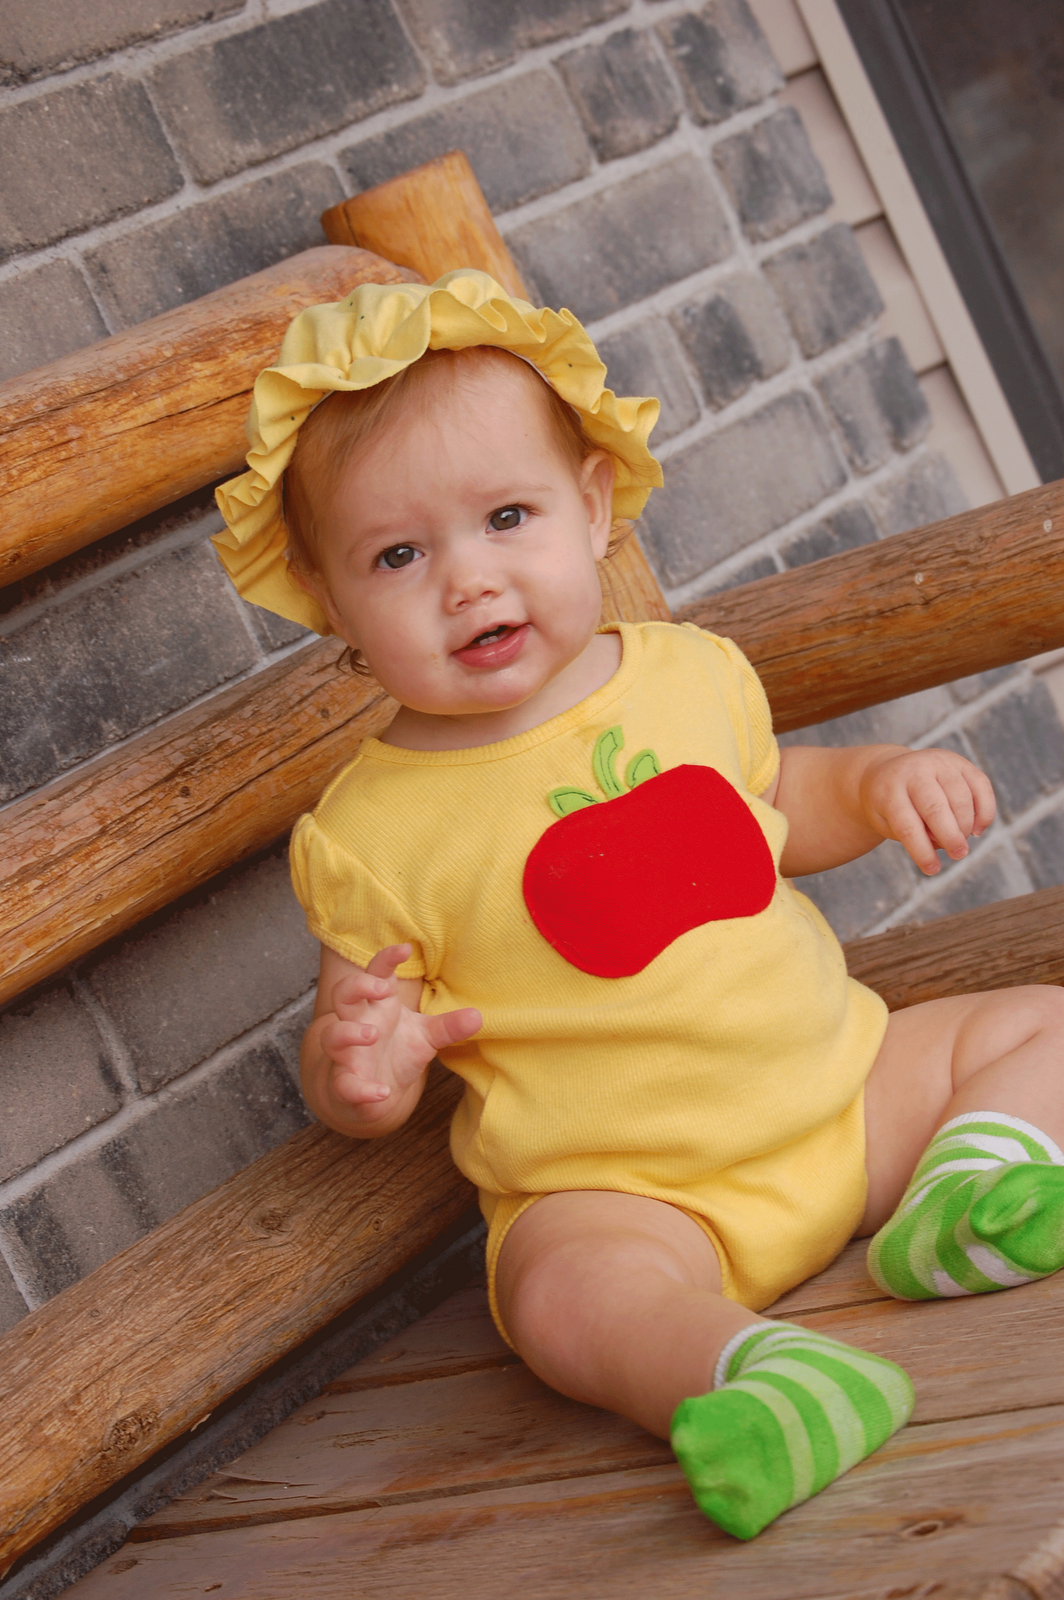 olives halloween costume strawberry shortcakes baby sister apple dumpling fyi kael - Apple Halloween Costumes